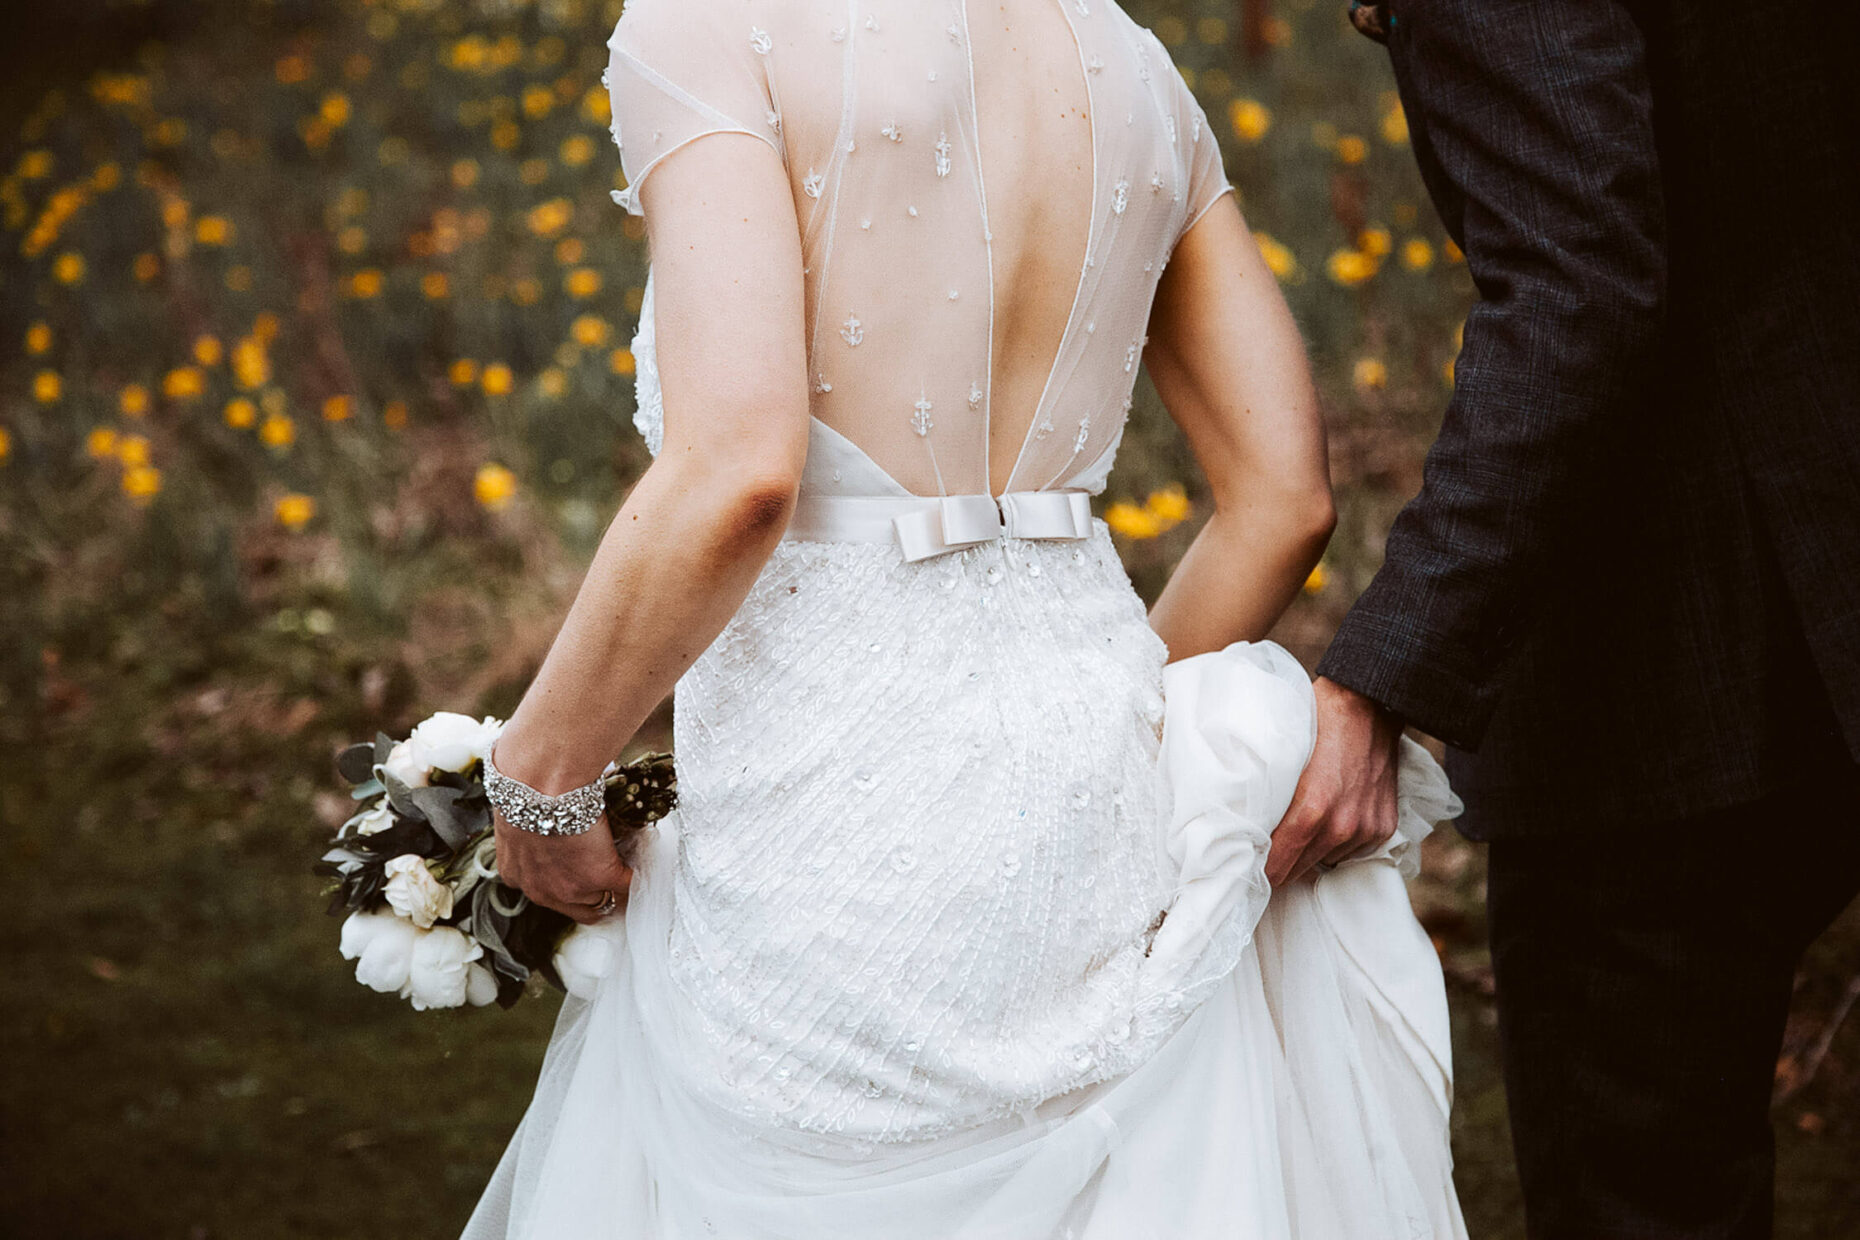 groom holding brides dress